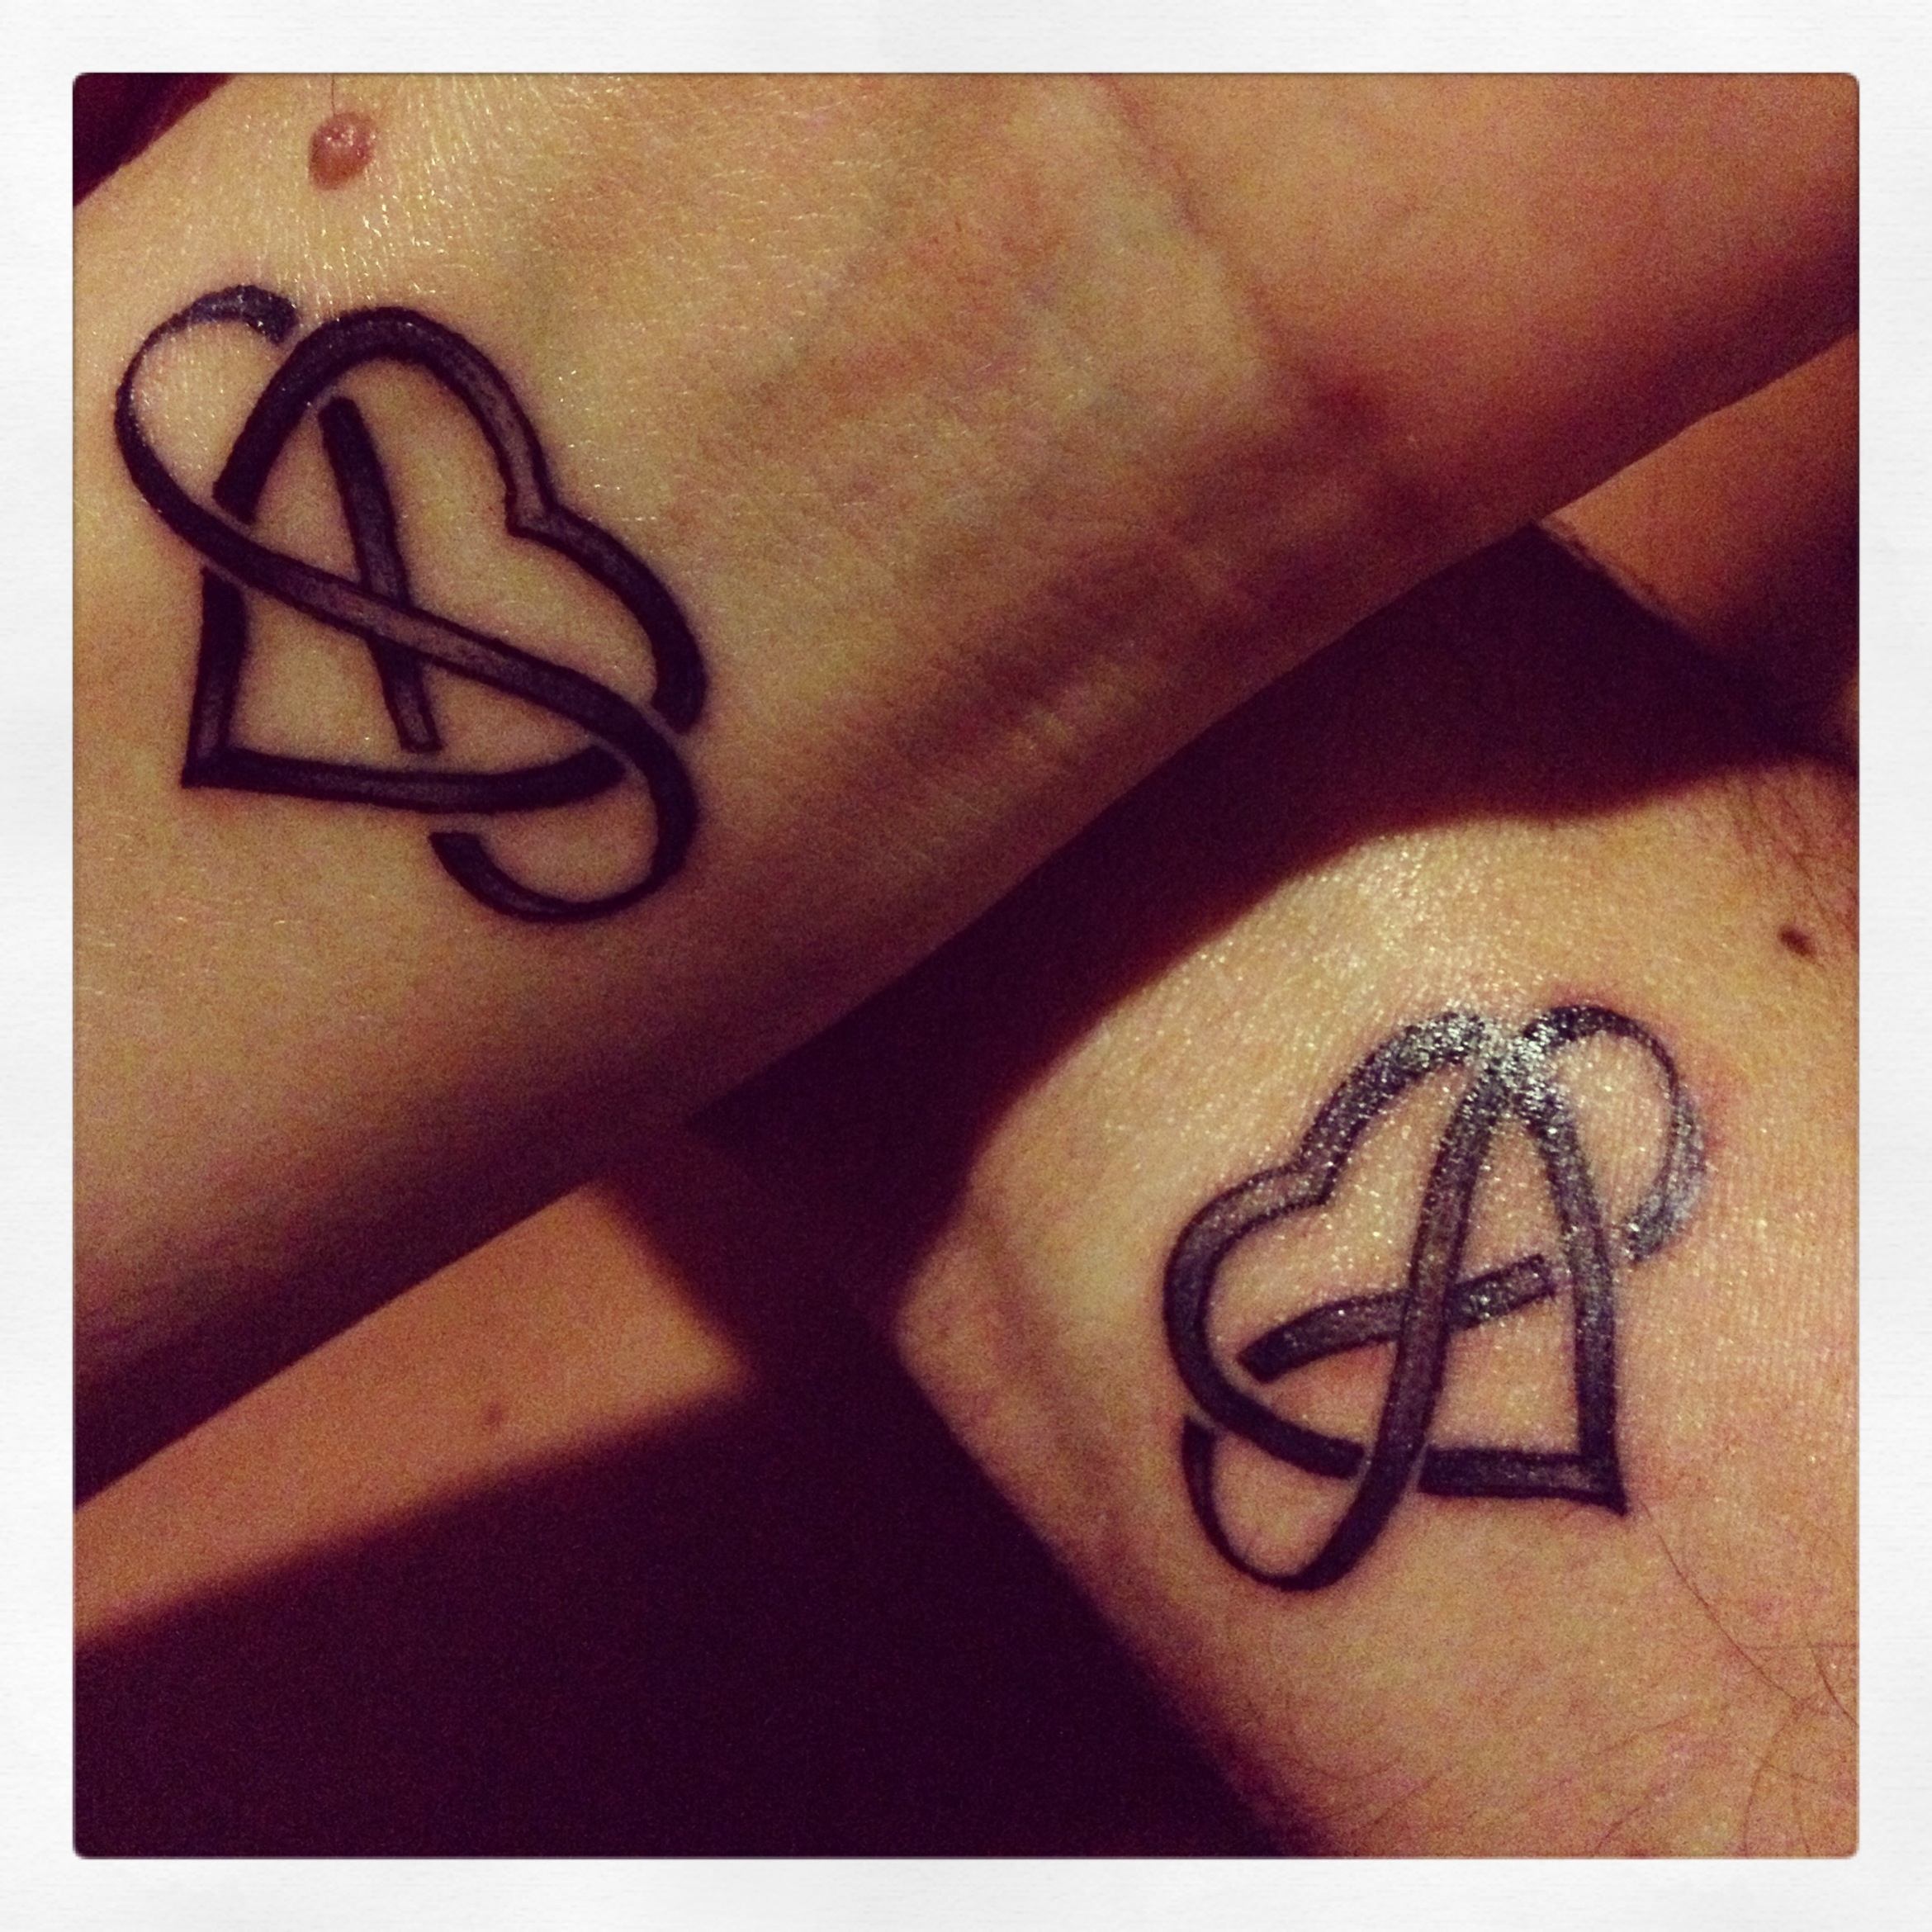 Infinity Love Tattoo Love infinity tattoos